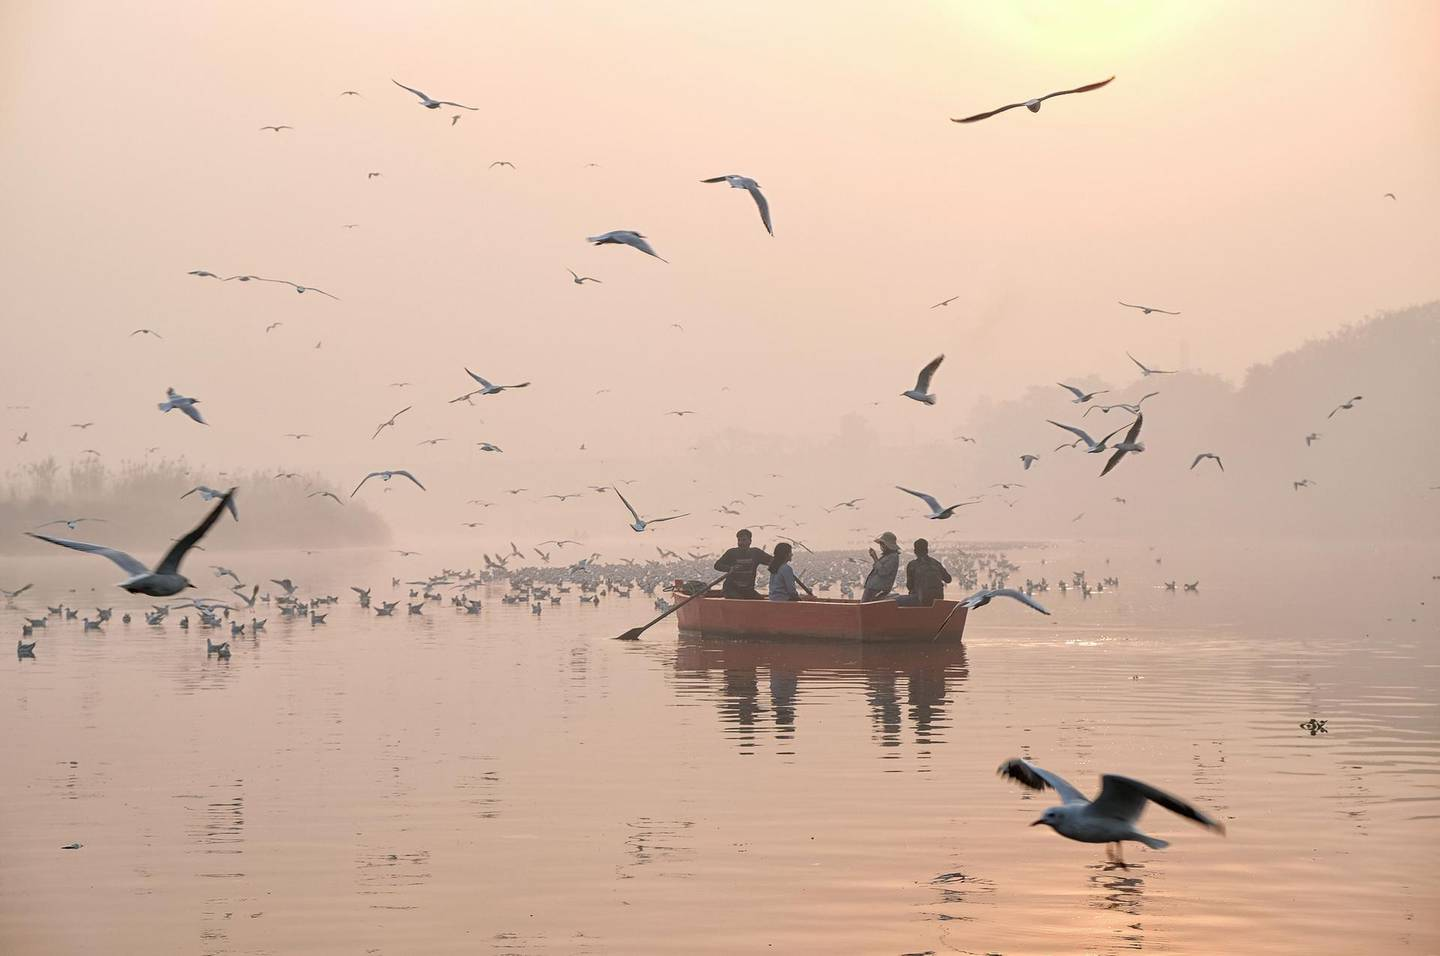 TOPSHOT - Indian women take pictures on a boat as migratory birds fly overhead on the Yamuna River on a morning of heavy air pollution in New Delhi on November 20, 2018. Smog levels spike during winter in Delhi, when air quality often eclipses the World Health Organization's safe levels. Cooler air traps pollutants -- such as from vehicles, building sites and farmers burning crops in regions outside the Indian capital -- close to the ground. / AFP / Noemi Cassanelli